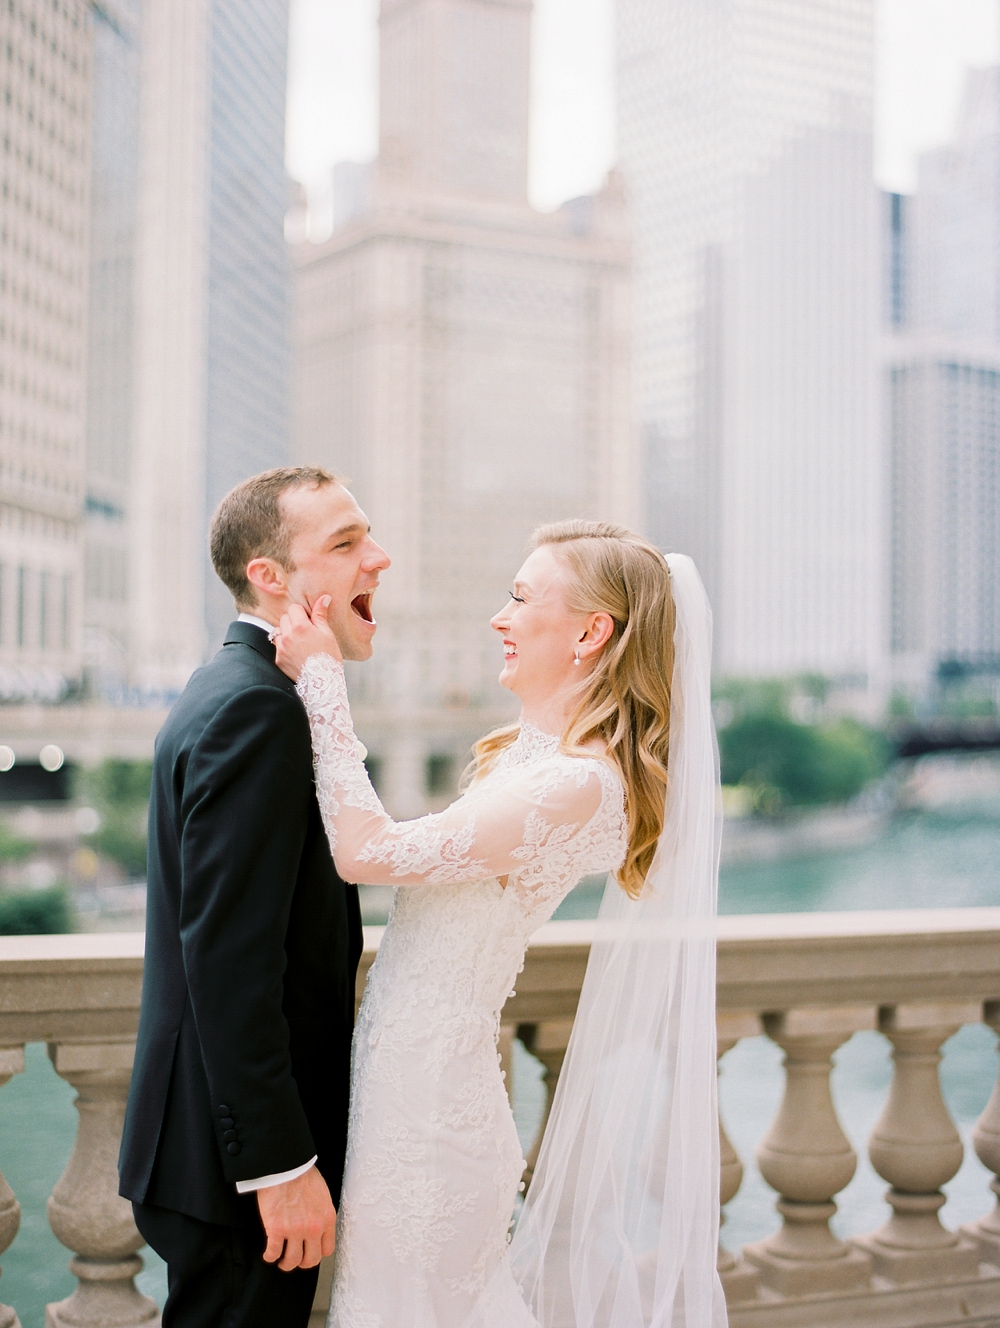 Kristin-La-Voie-Photography-Chicago-Wedding-11